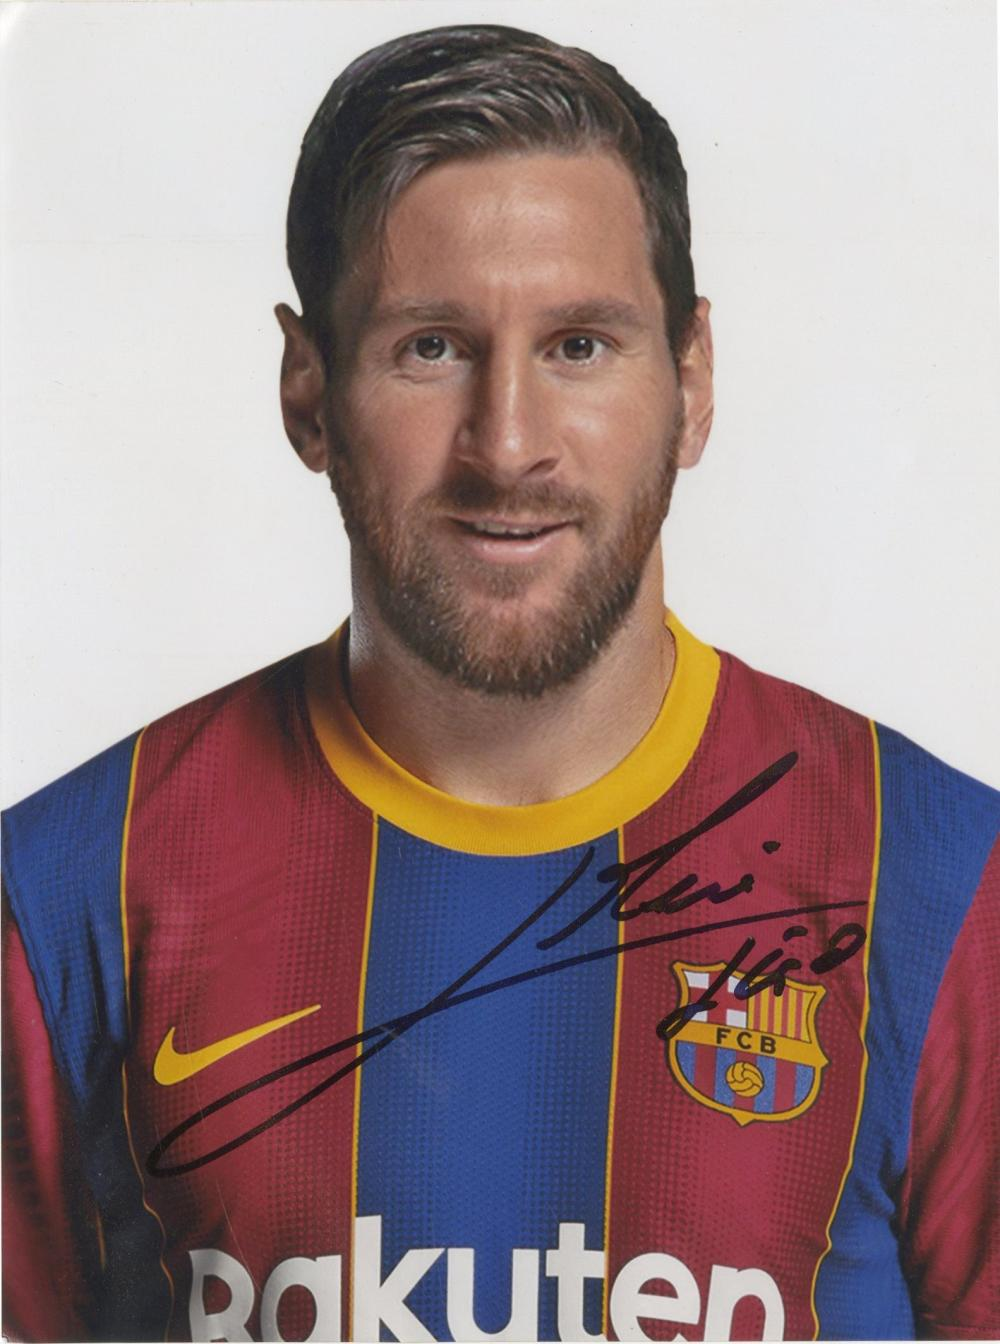 Autograph - A photograph of world football star Lionel Messi signed